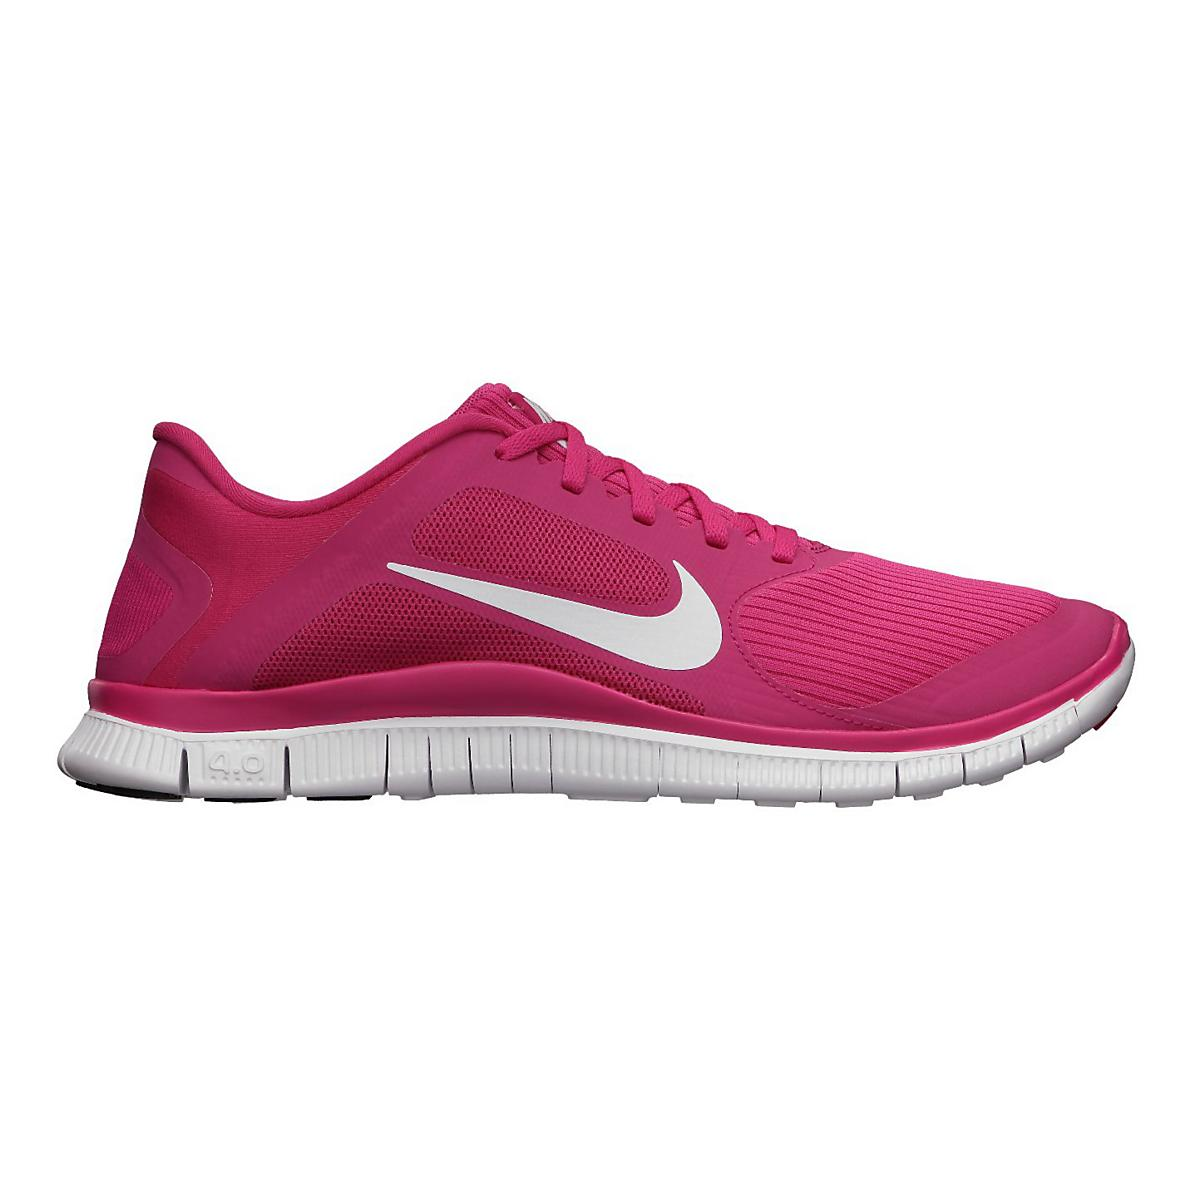 Womens Nike Free 4.0 v3 Running Shoe at Road Runner Sports